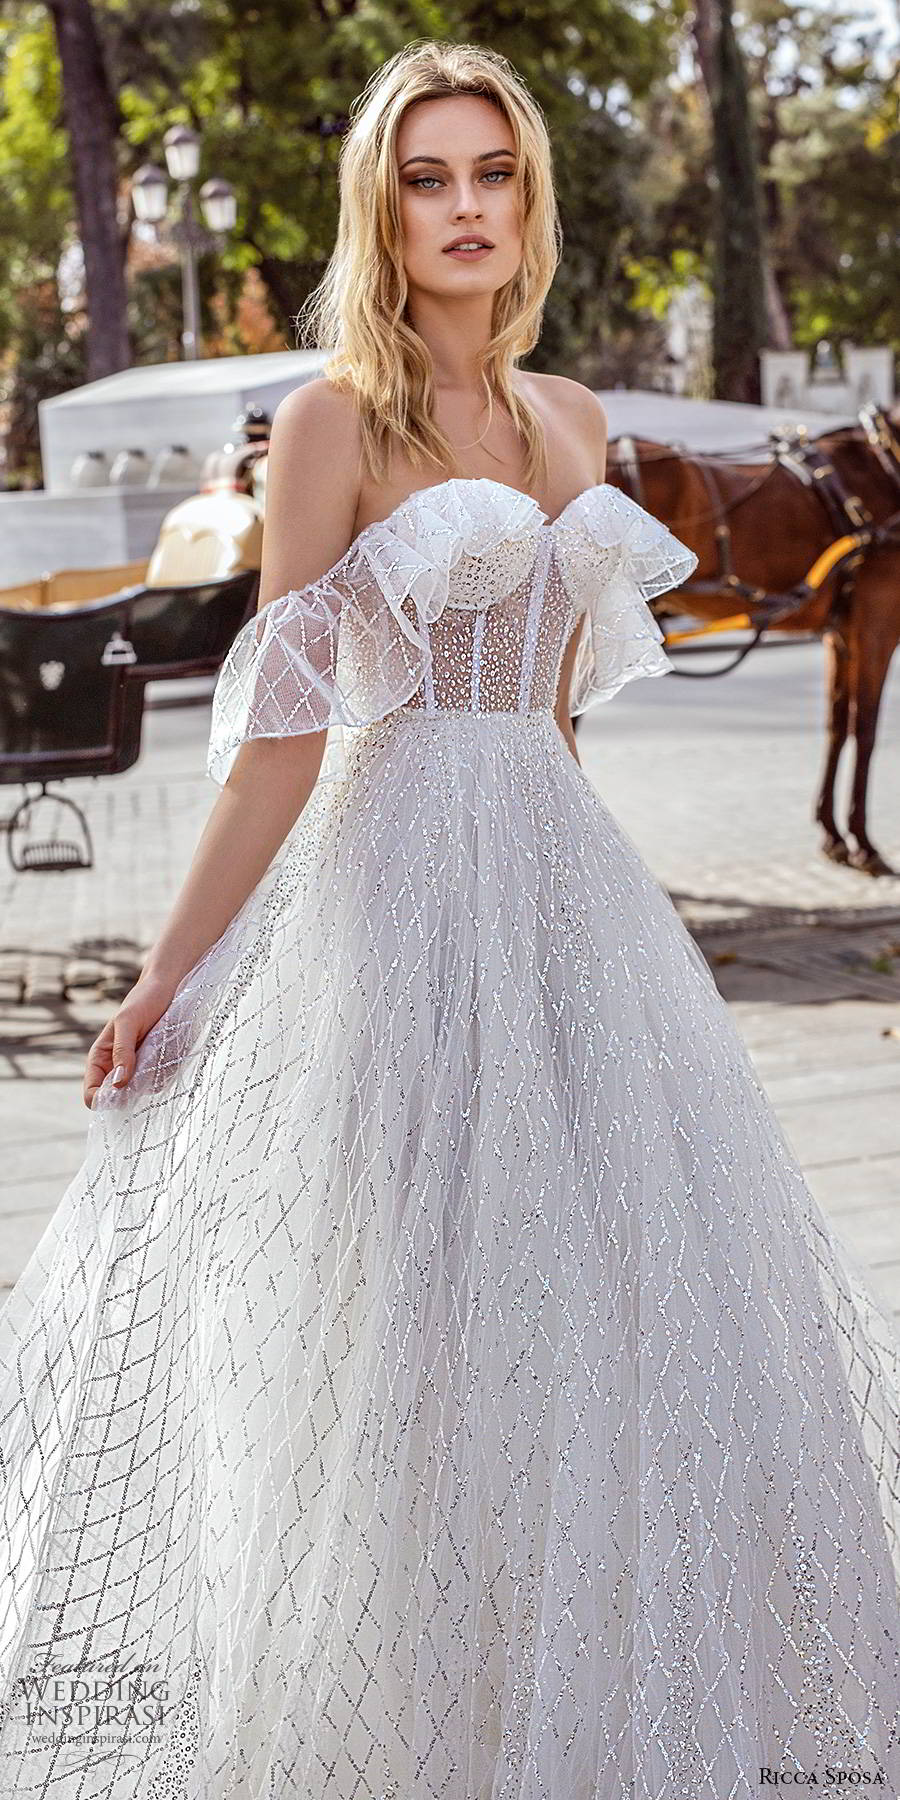 ricca sposa 2019 bridal off shoulder sweetheart neckline sheer corset bodice romantic glitzy a line ball gown wedding dress chapel train (12) zv